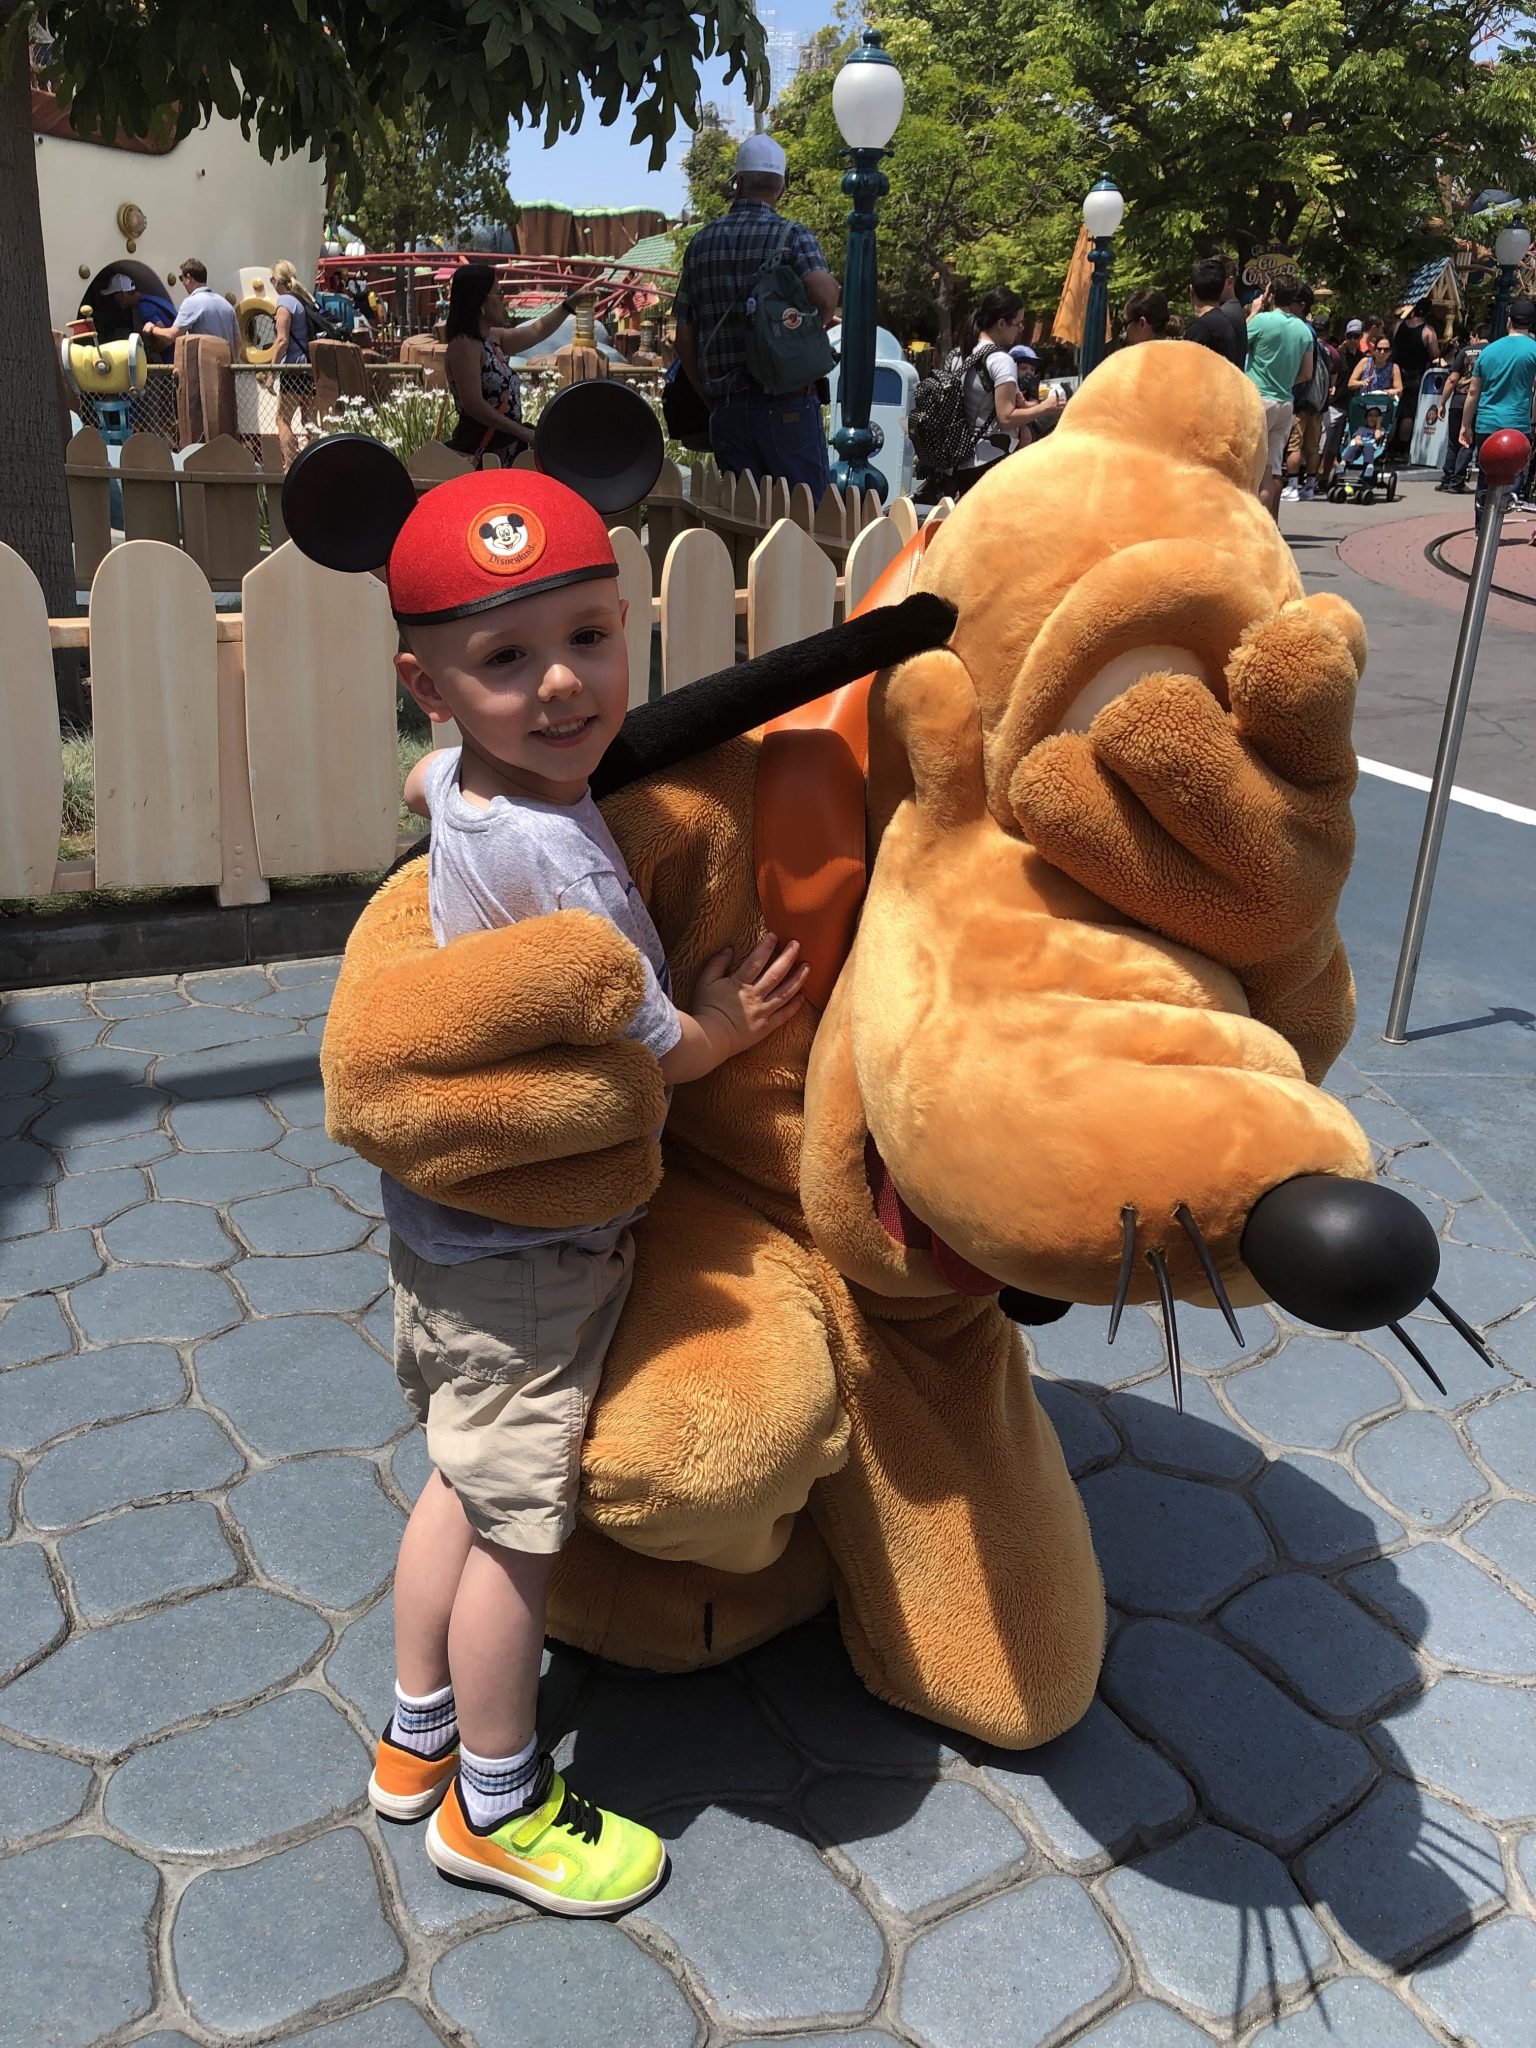 Meeting pluto on our first trip to disneyland